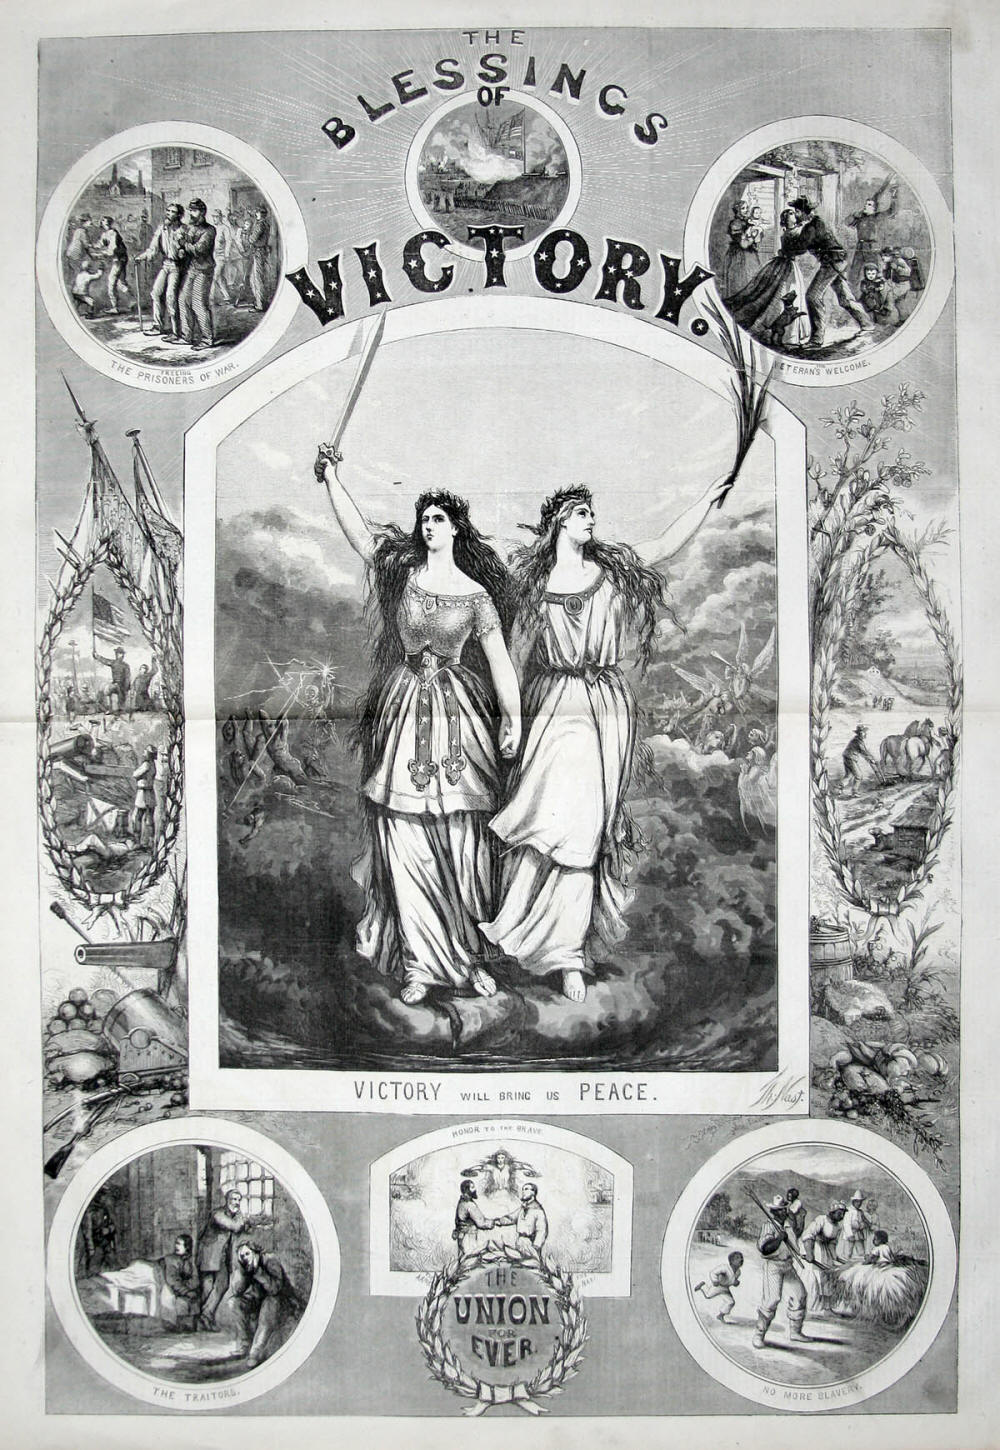 Union Poster, The Blessings of Victory